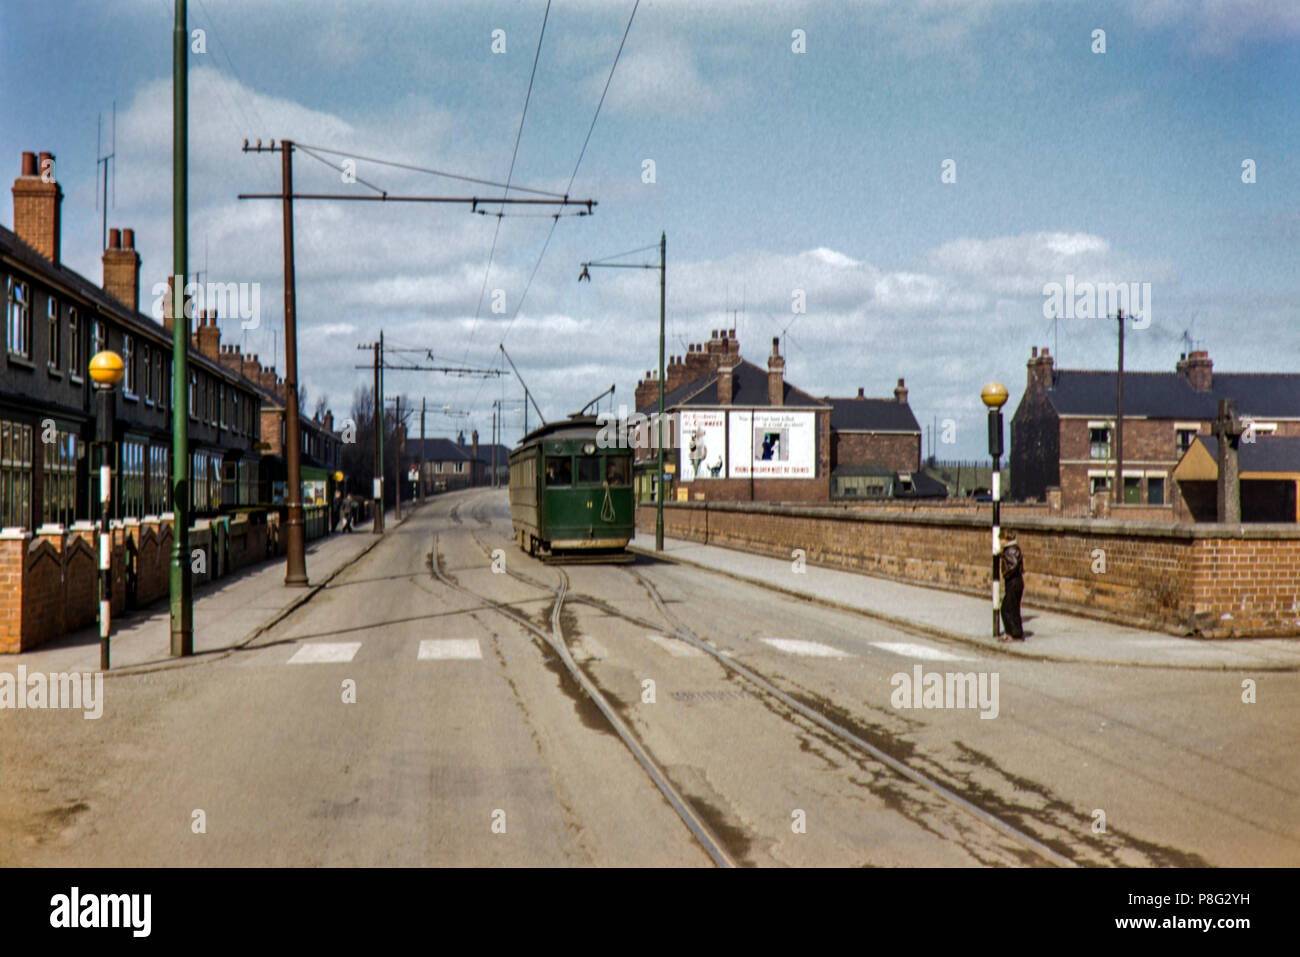 Grimsby and Immingham Light Railway tram no. 11 Image taken in April 1956 - Stock Image